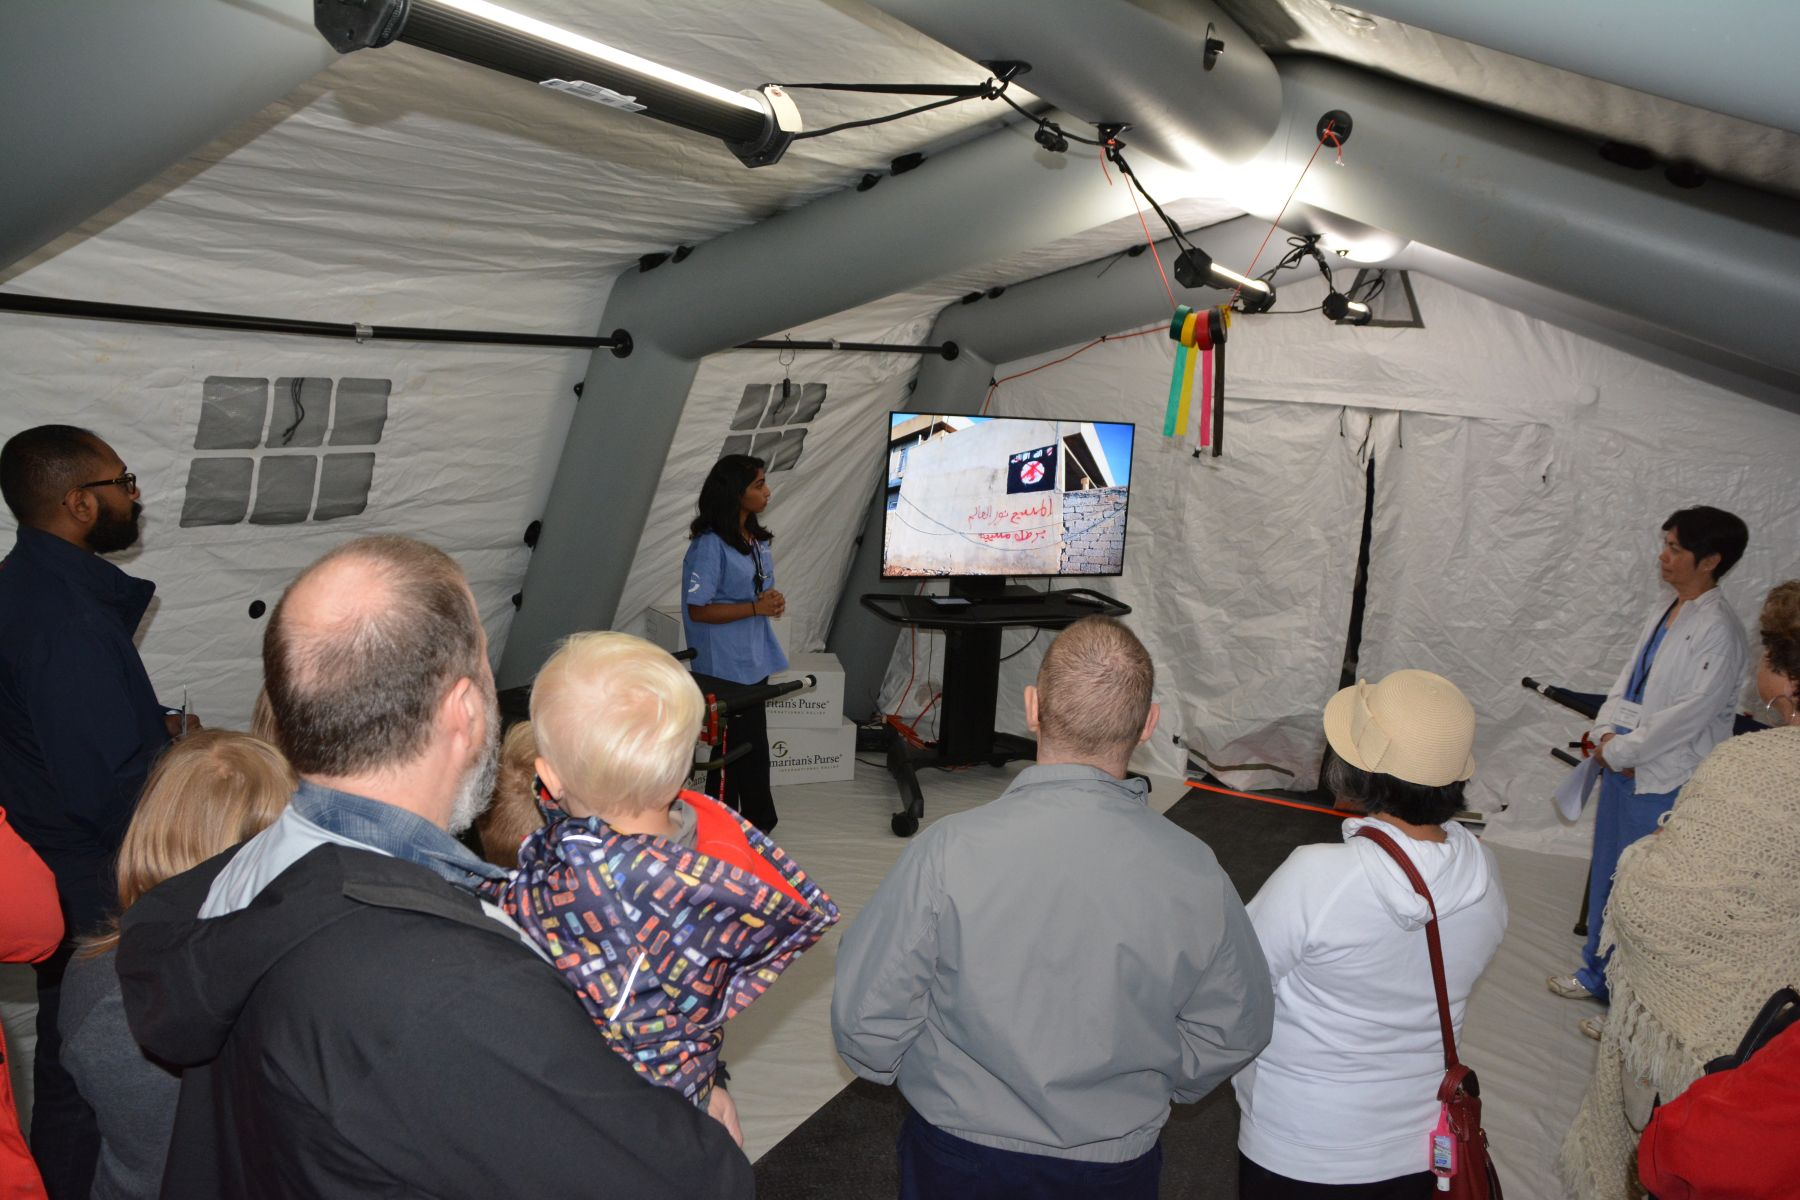 Staff toured guests through an Emergency Field Hospital, which Samaritan's Purse has set up and operated in disaster and war zones.